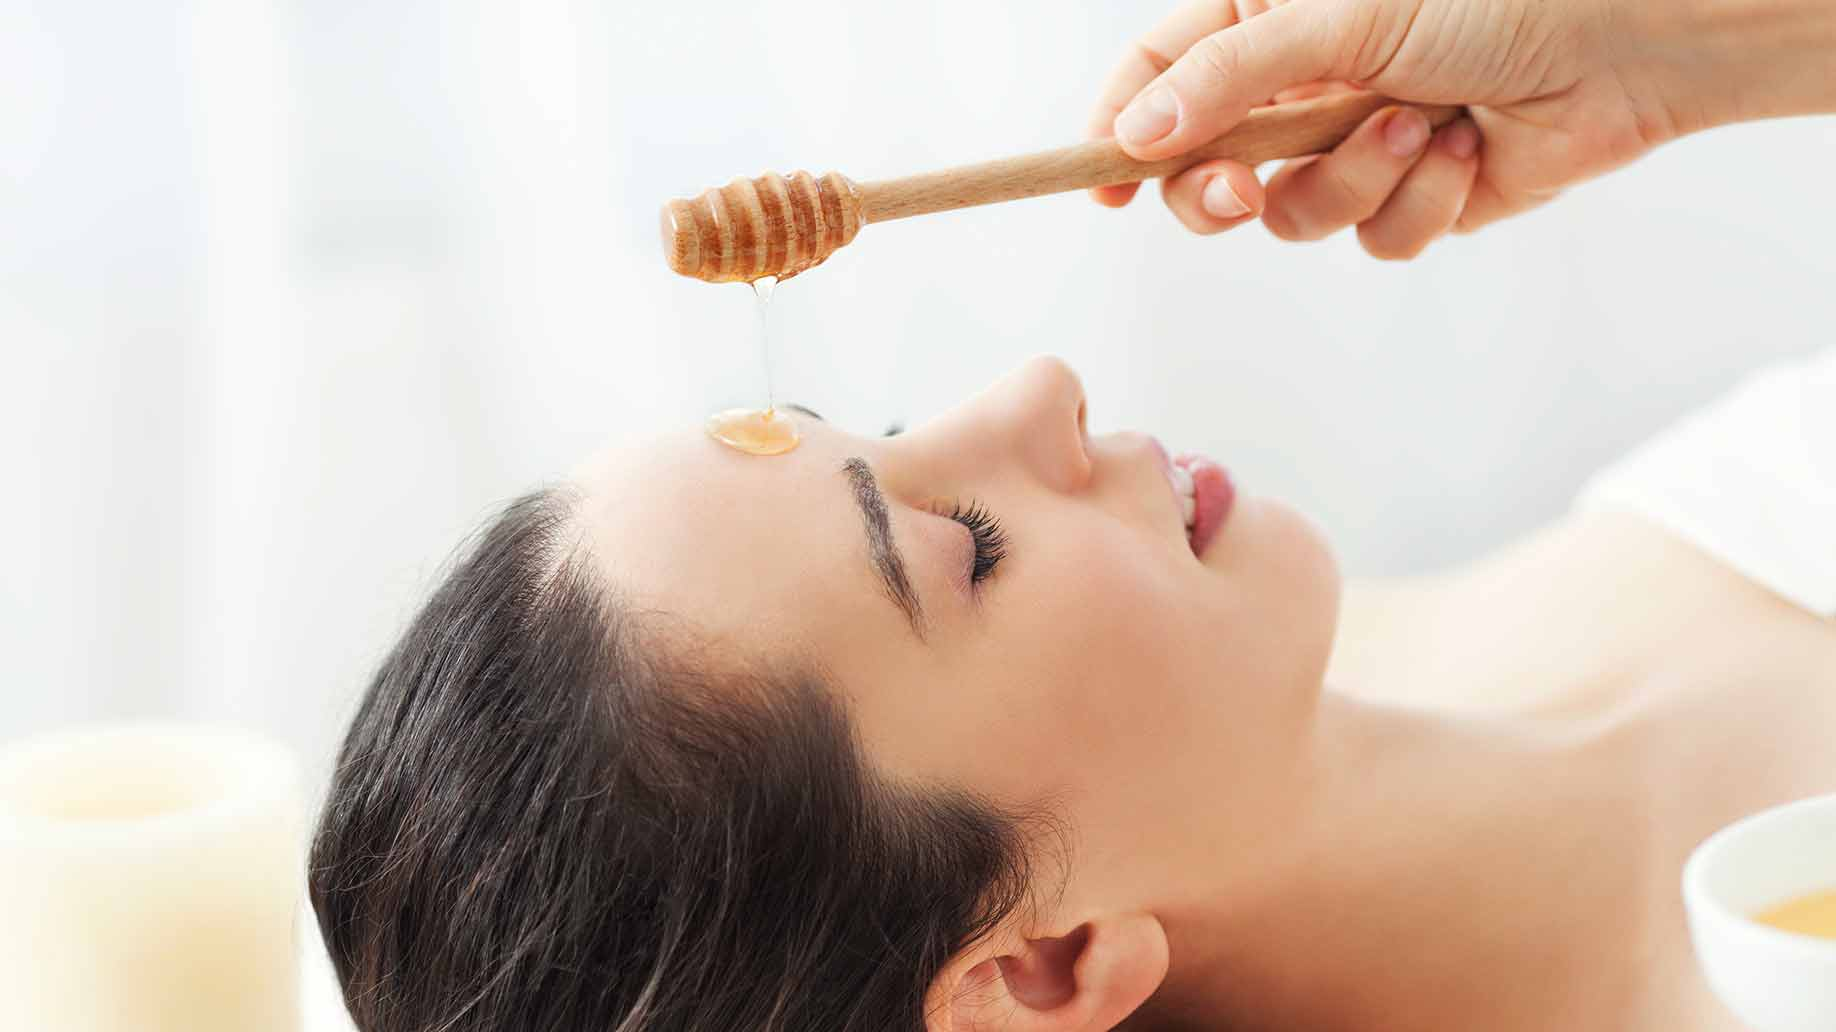 natural benefits of honey raw organic improves skin face masks acne remedies uses